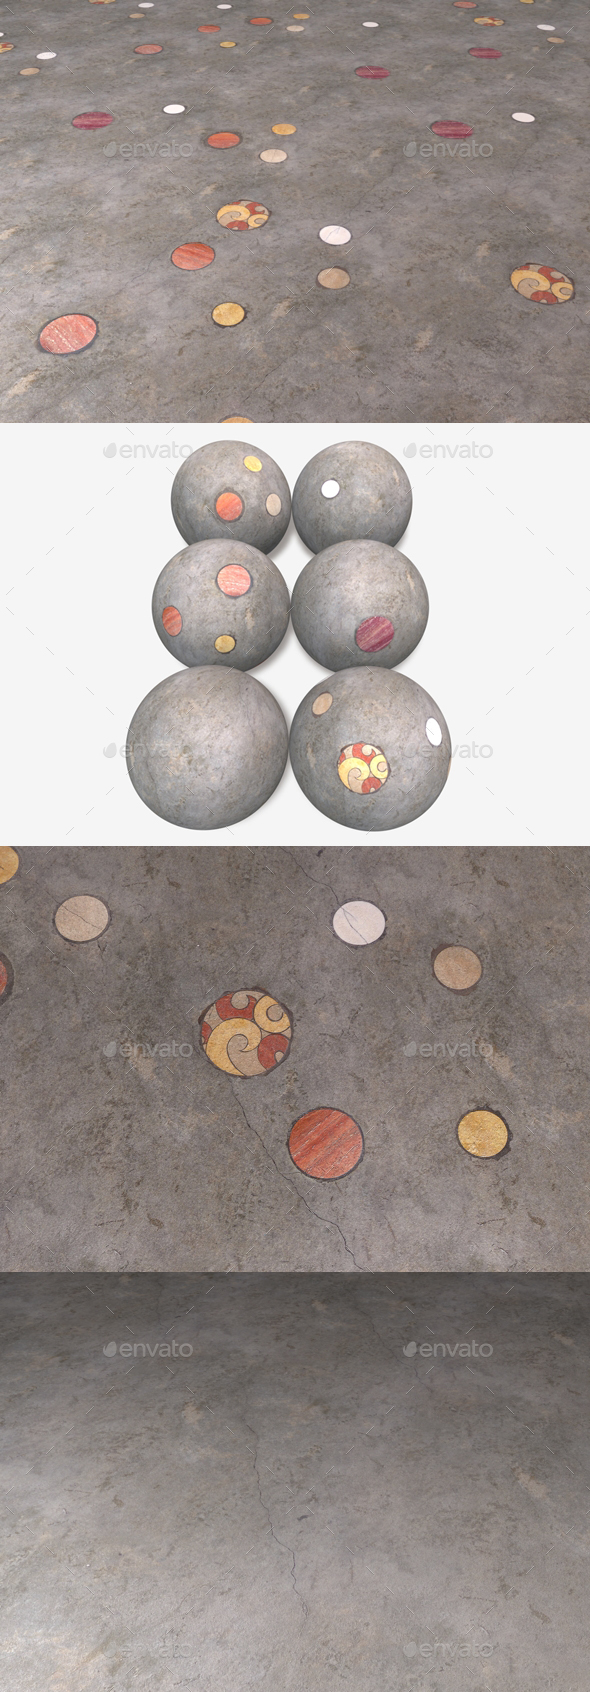 6 Cosmic Concrete Flooring Textures - 3DOcean Item for Sale